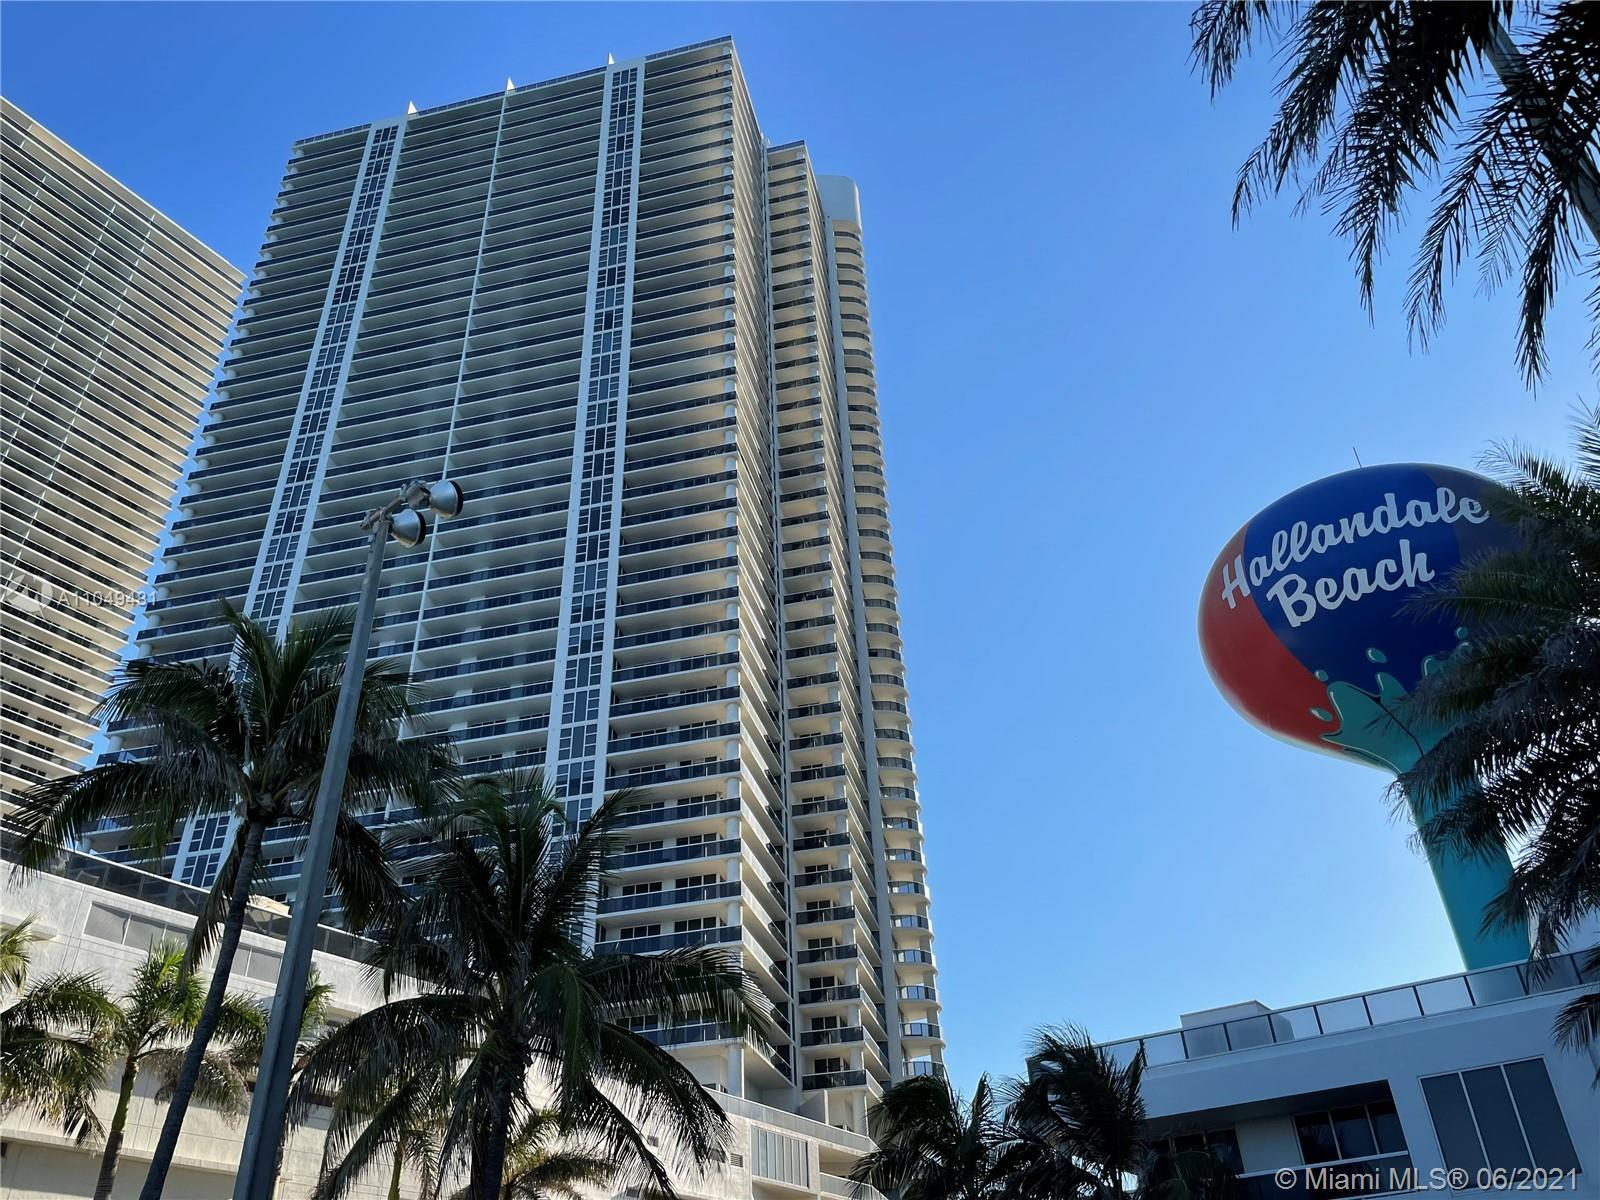 JUST LISTED!!!   Unique Lanai Unit with direct access to pool deck. Large 2/2 corner unit (1782 SQ F